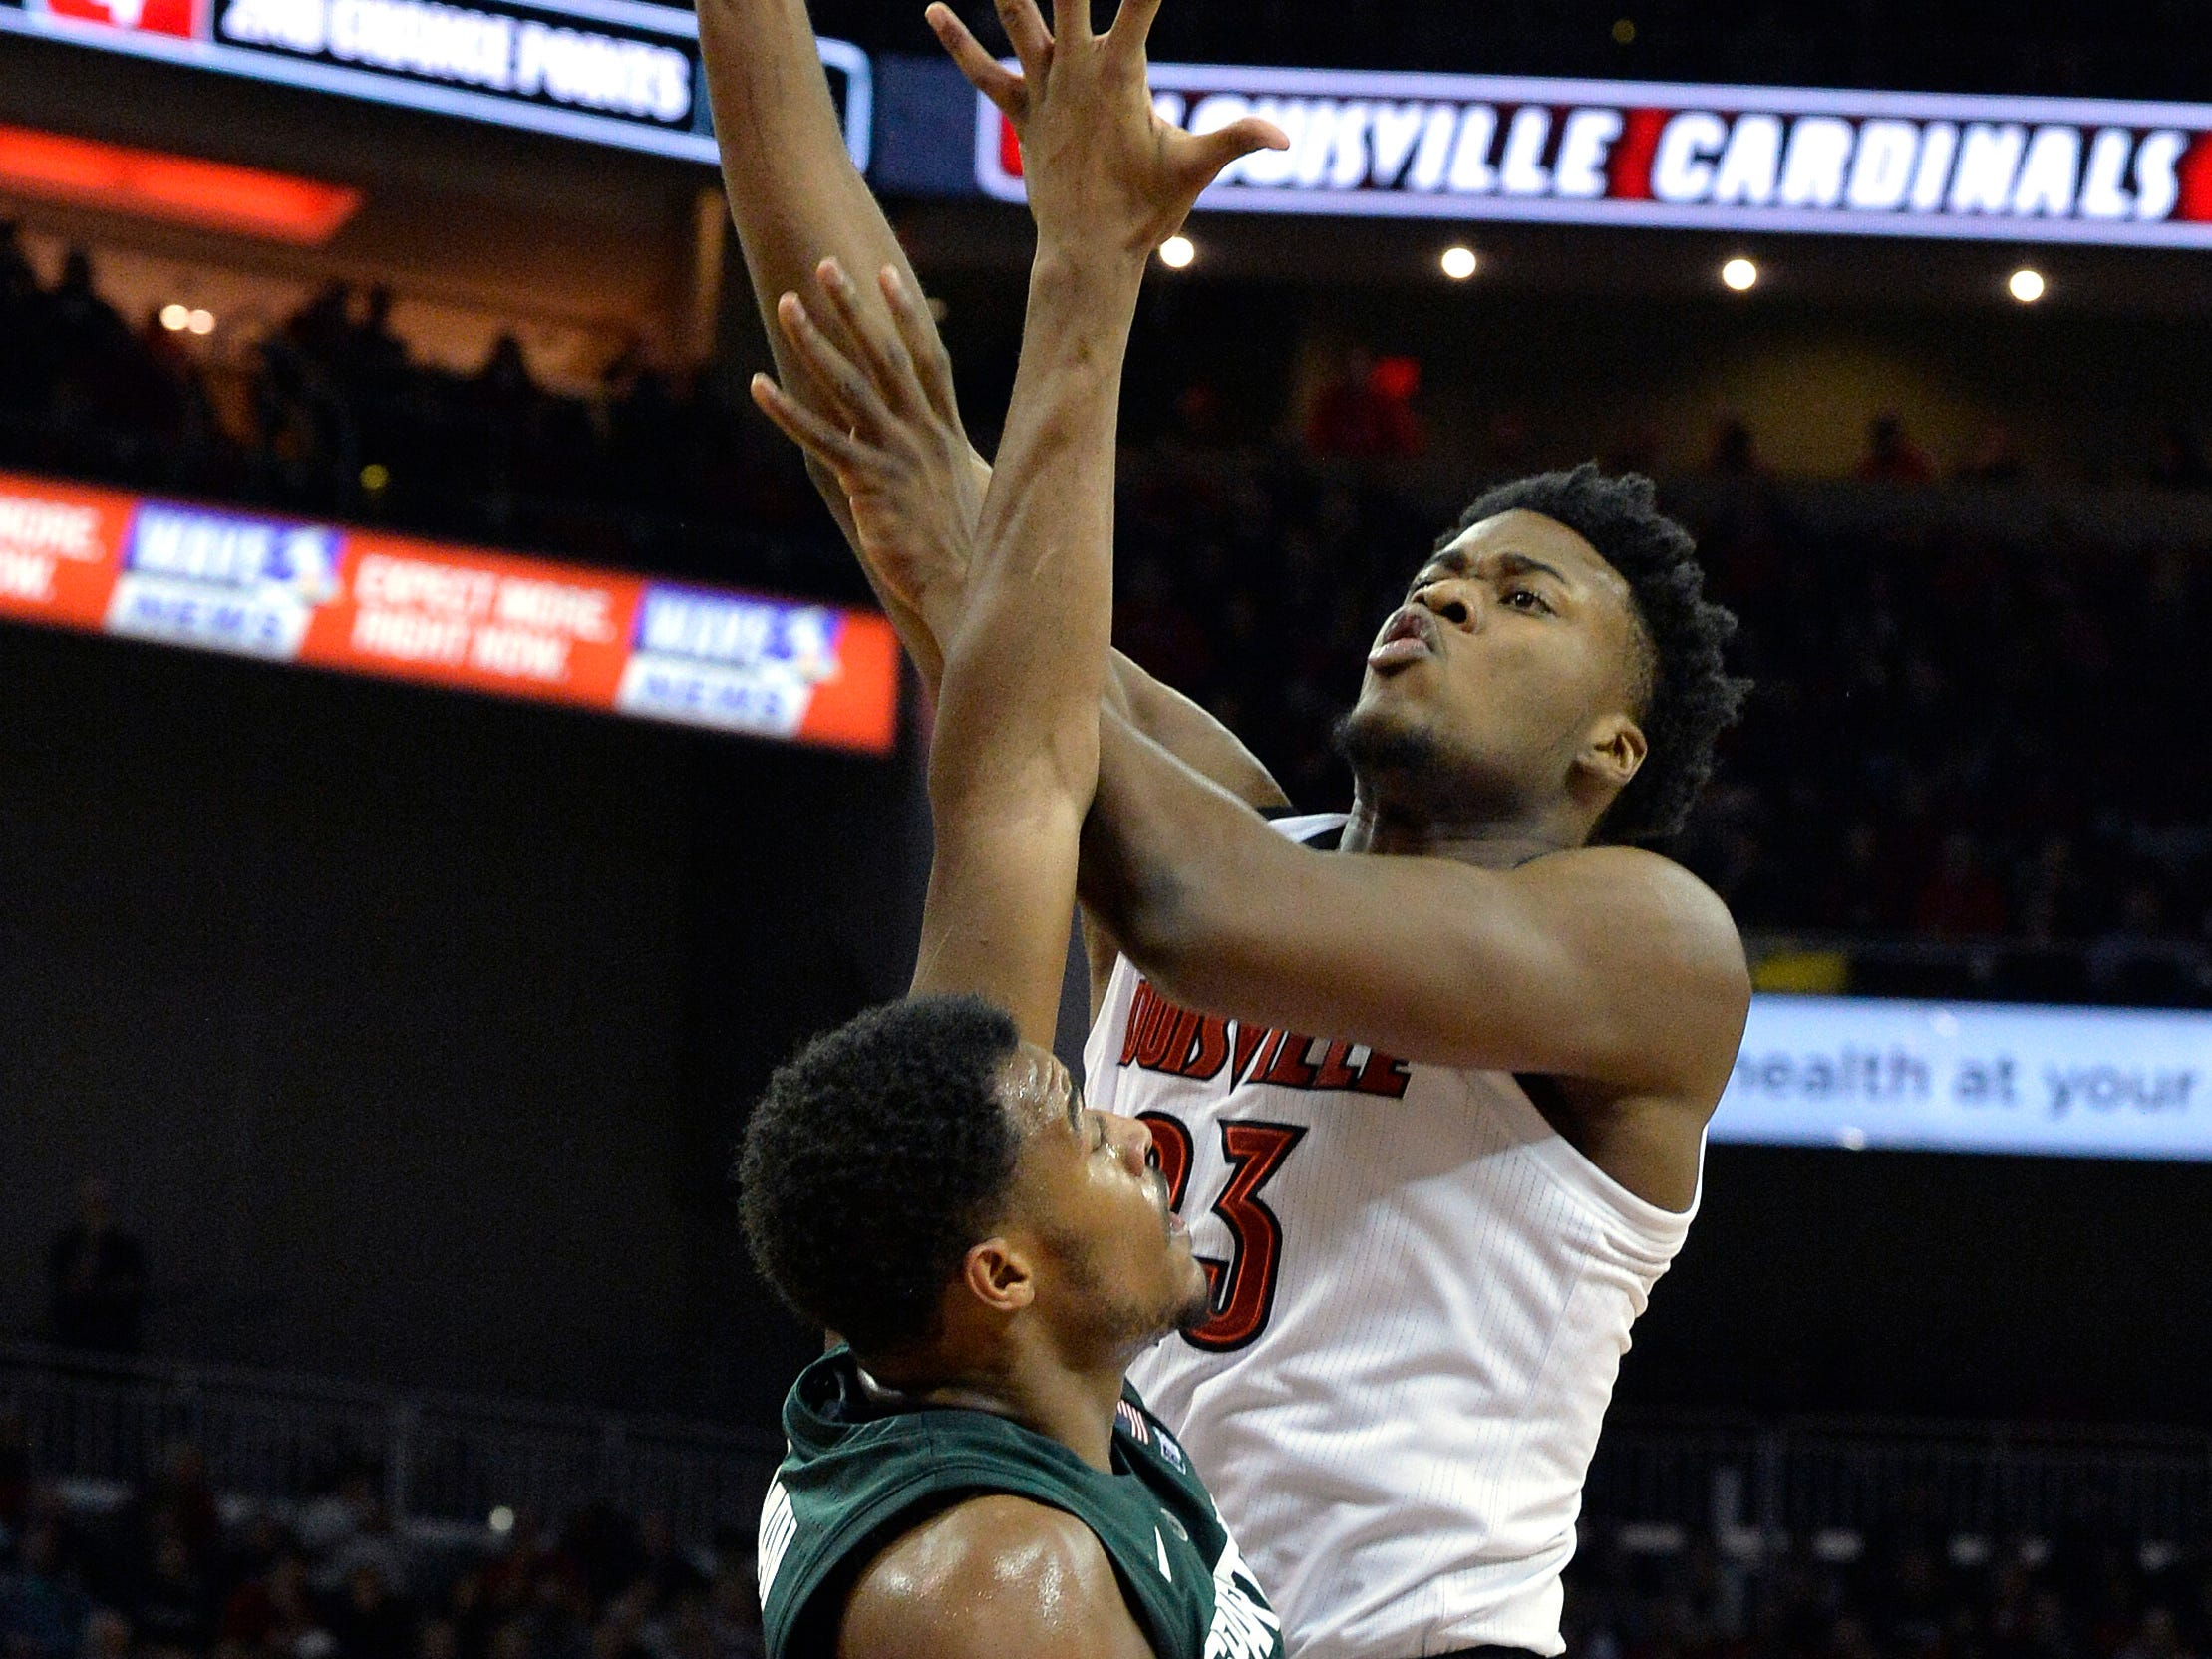 Louisville center Steven Enoch (23) shoots over the defense of Michigan State forward Xavier Tillman (23) during the second half of an NCAA college basketball game, in Louisville, Ky., Tuesday, Nov. 27, 2018. Louisville won 82-78.